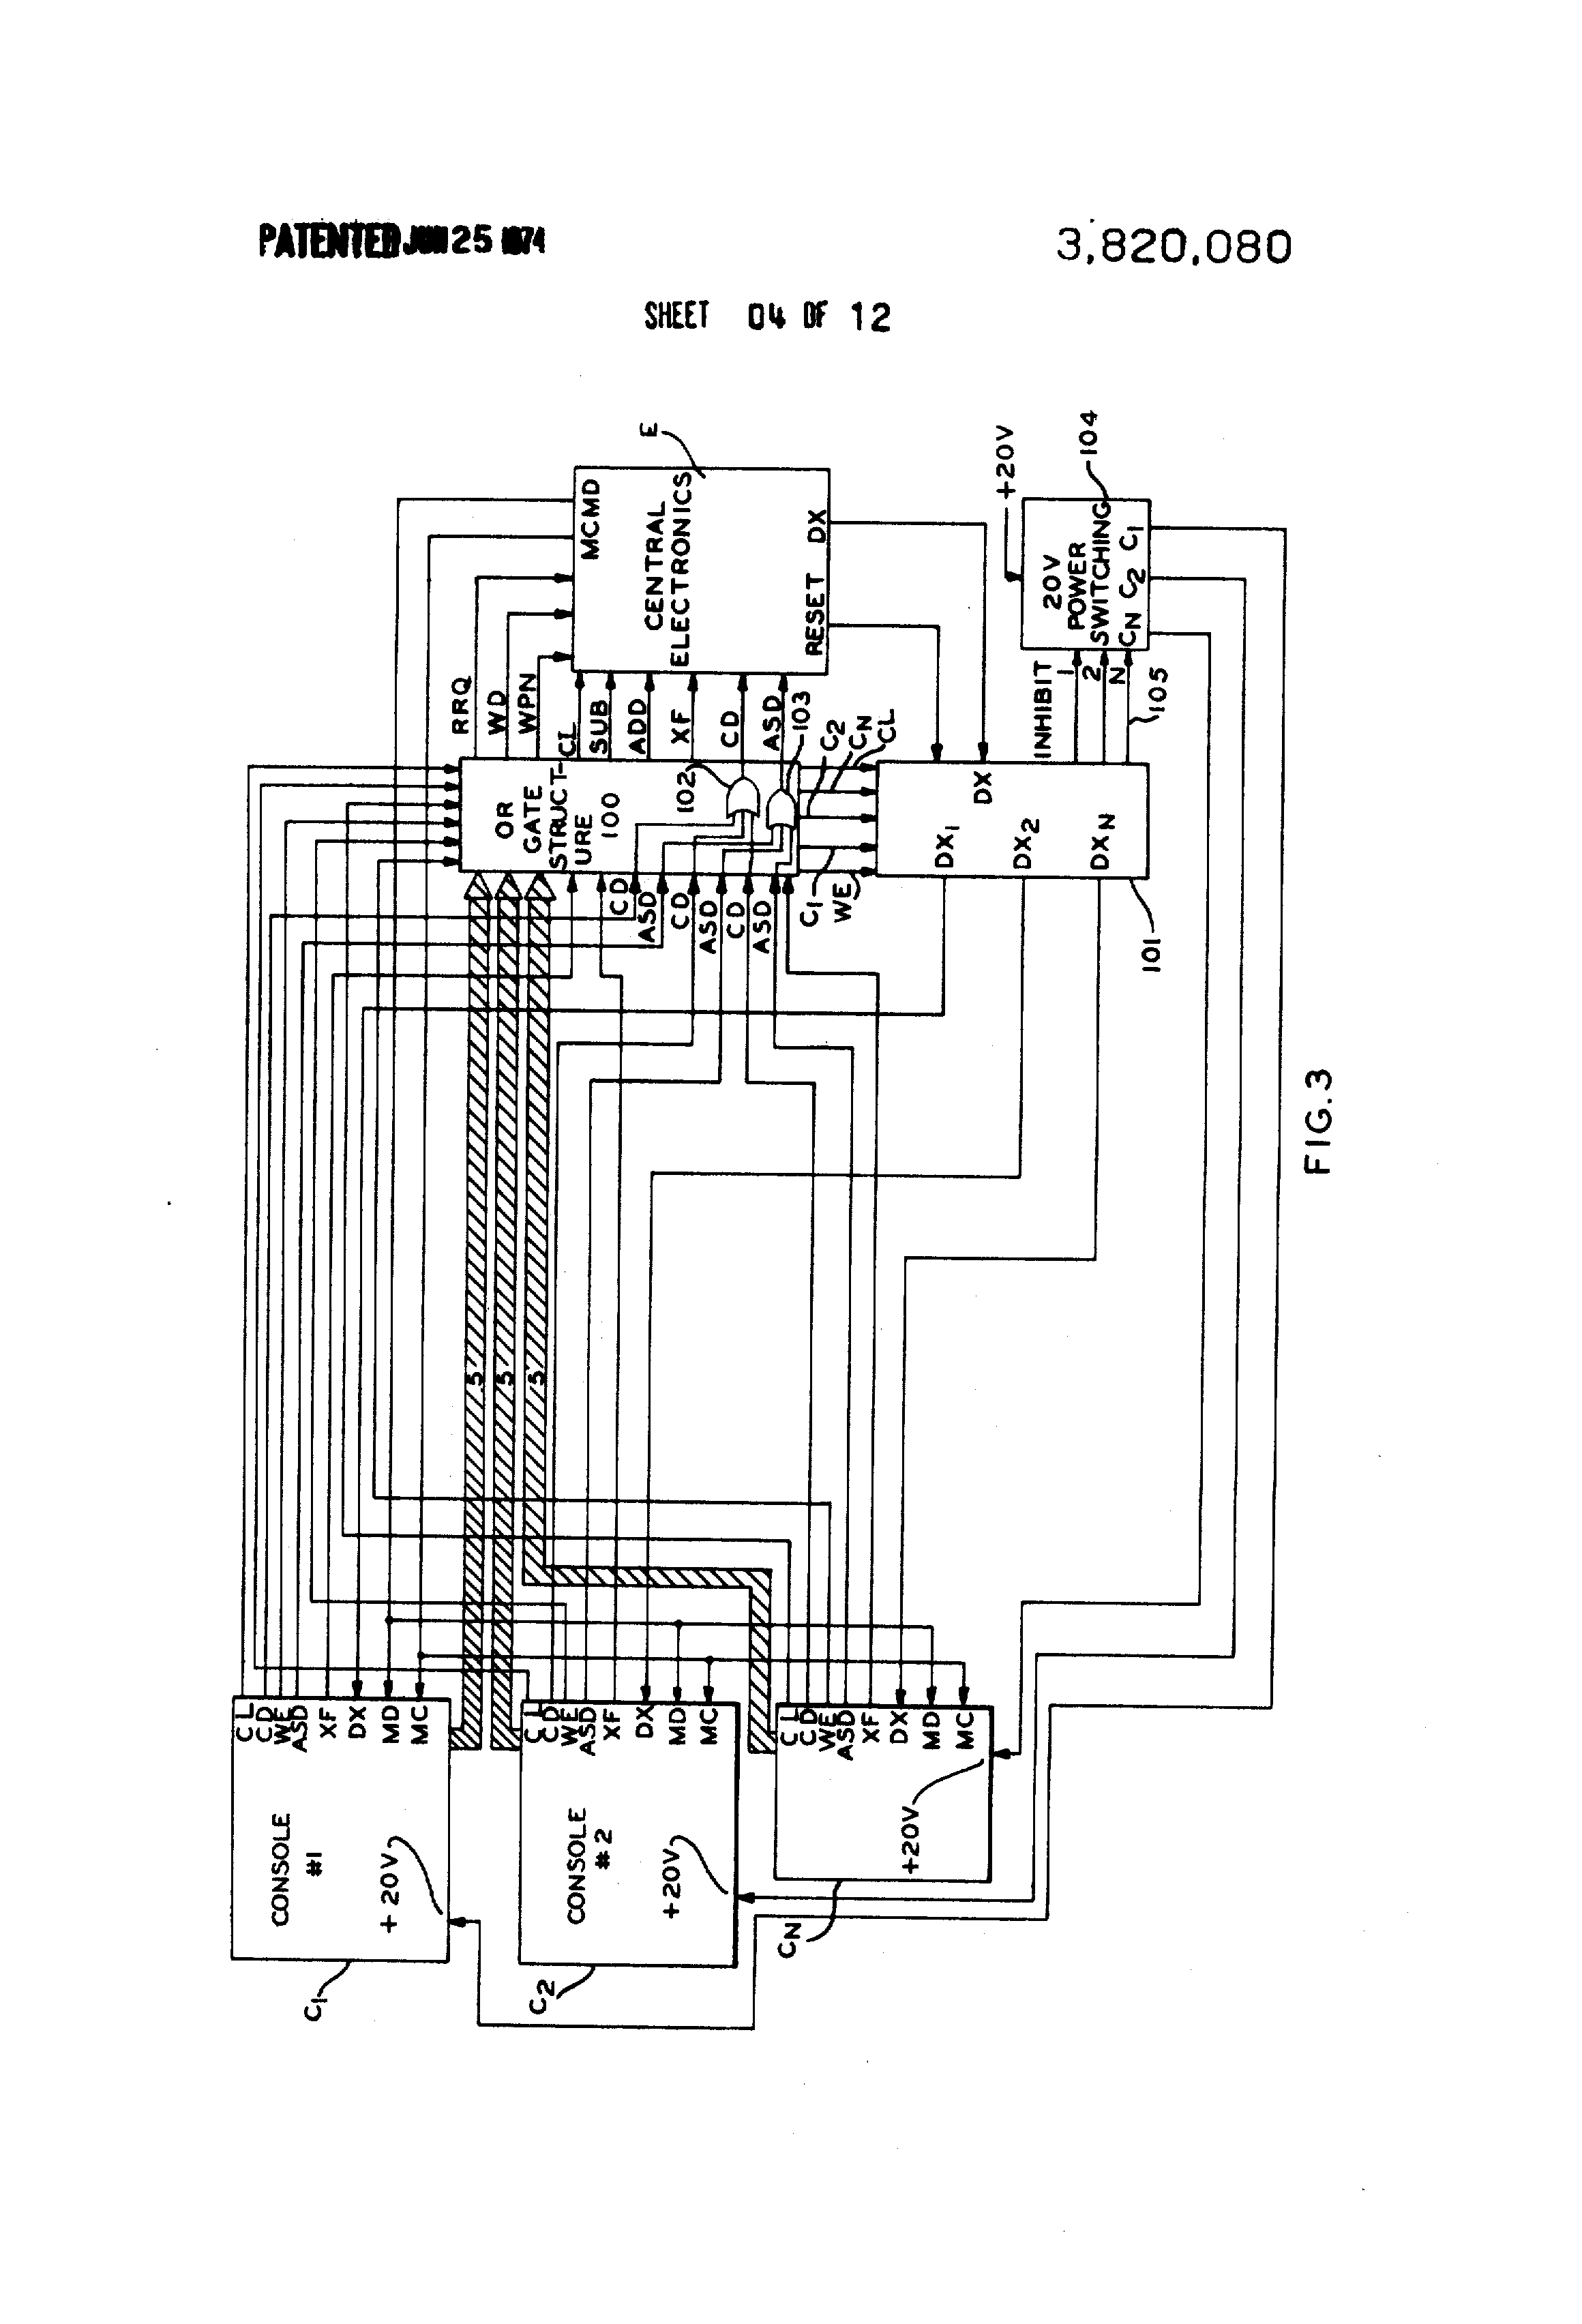 electronic data processing systems Electronic data processing equipment meaning tangible hardware including   code or similar instruction introduced into or enacted on a computer system or a.